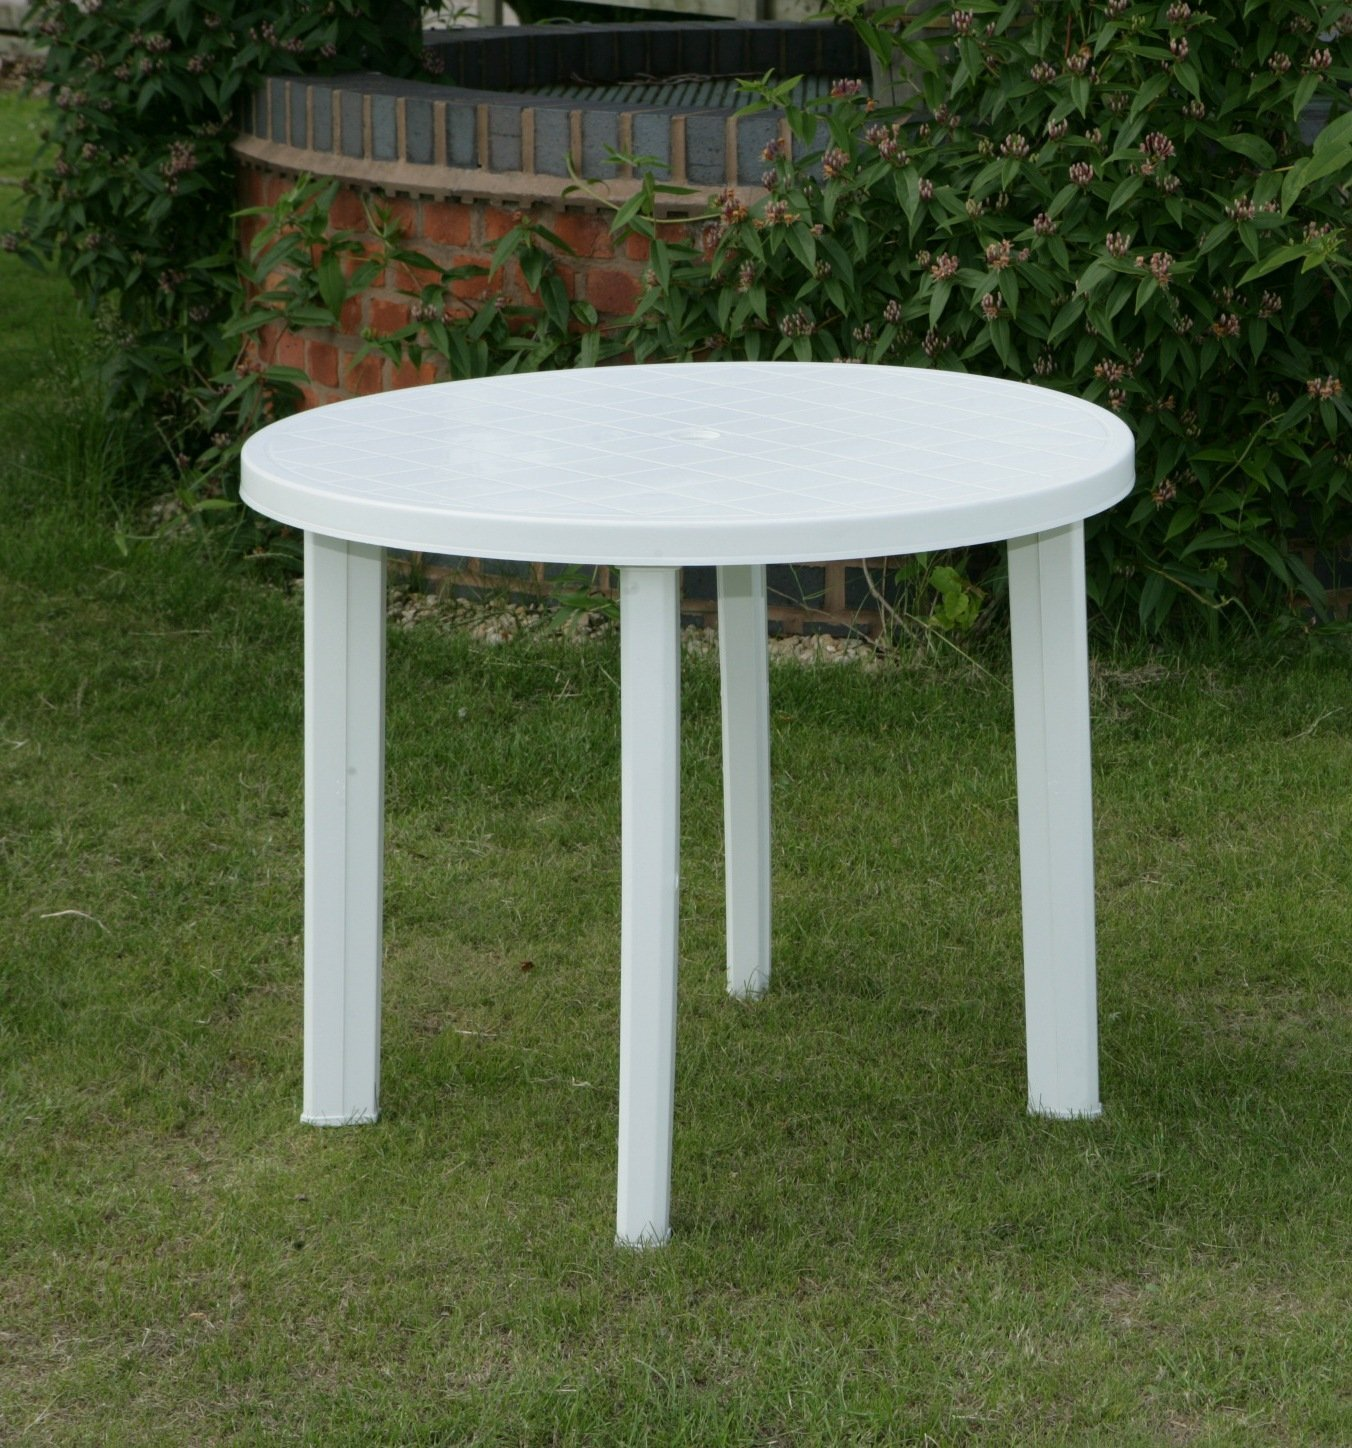 ROUND GARDEN TABLE ONLY IN WHITE RESIN PATIO FURNITURE OUTDOOR